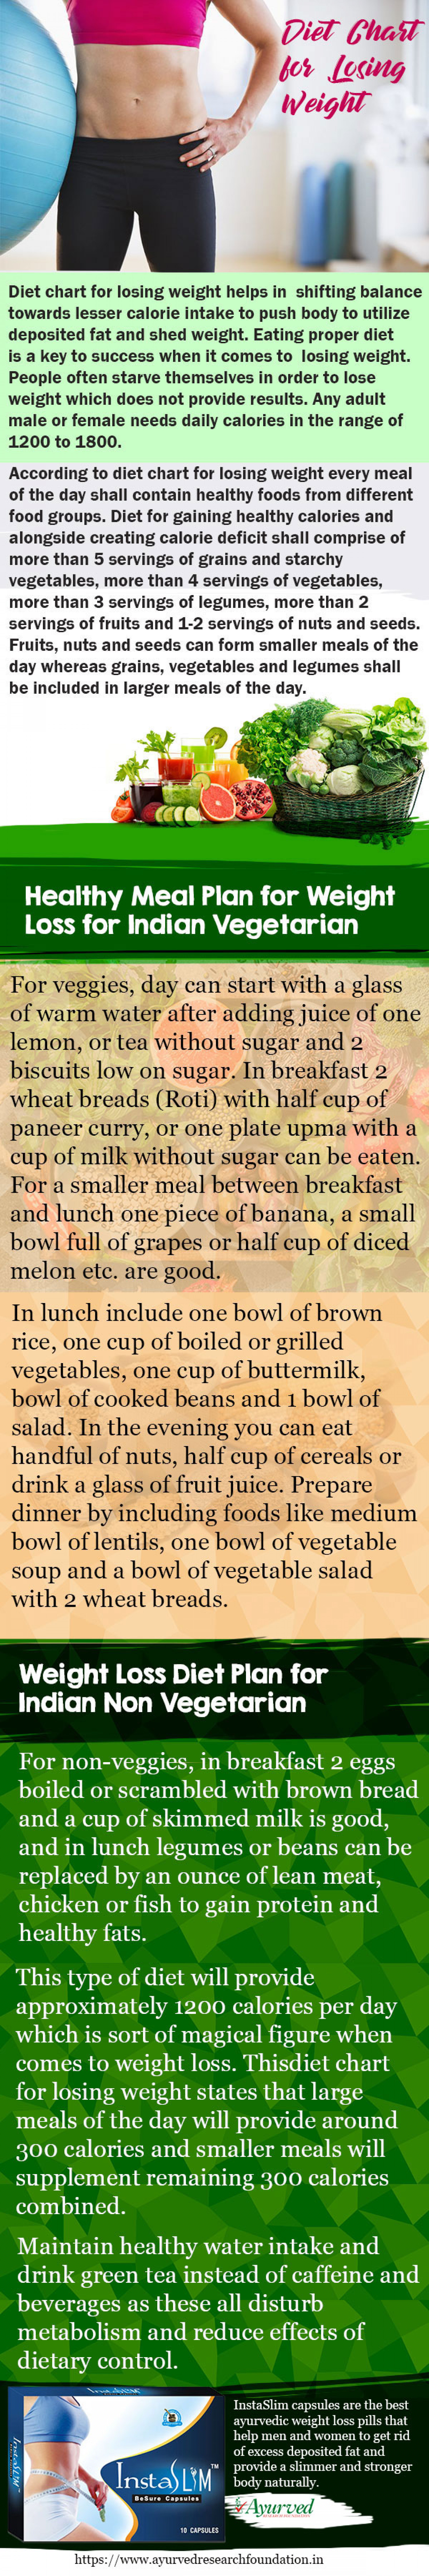 Indian Diet Chart for Losing Weight Infographic, Get Flat Belly  Infographic